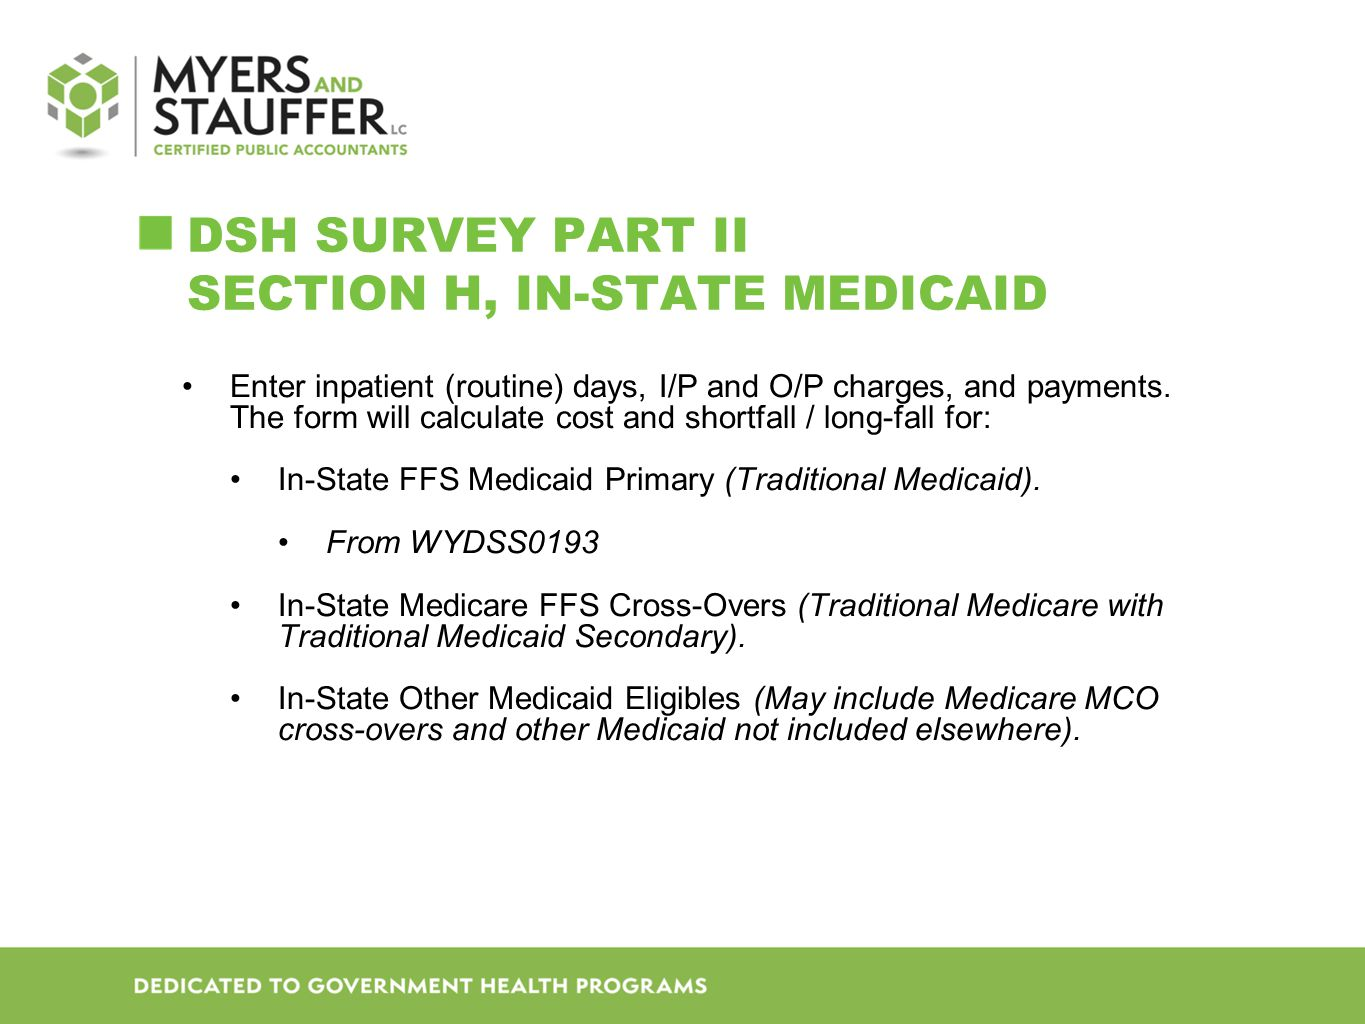 DSH SURVEY Part II Section H, In-state Medicaid